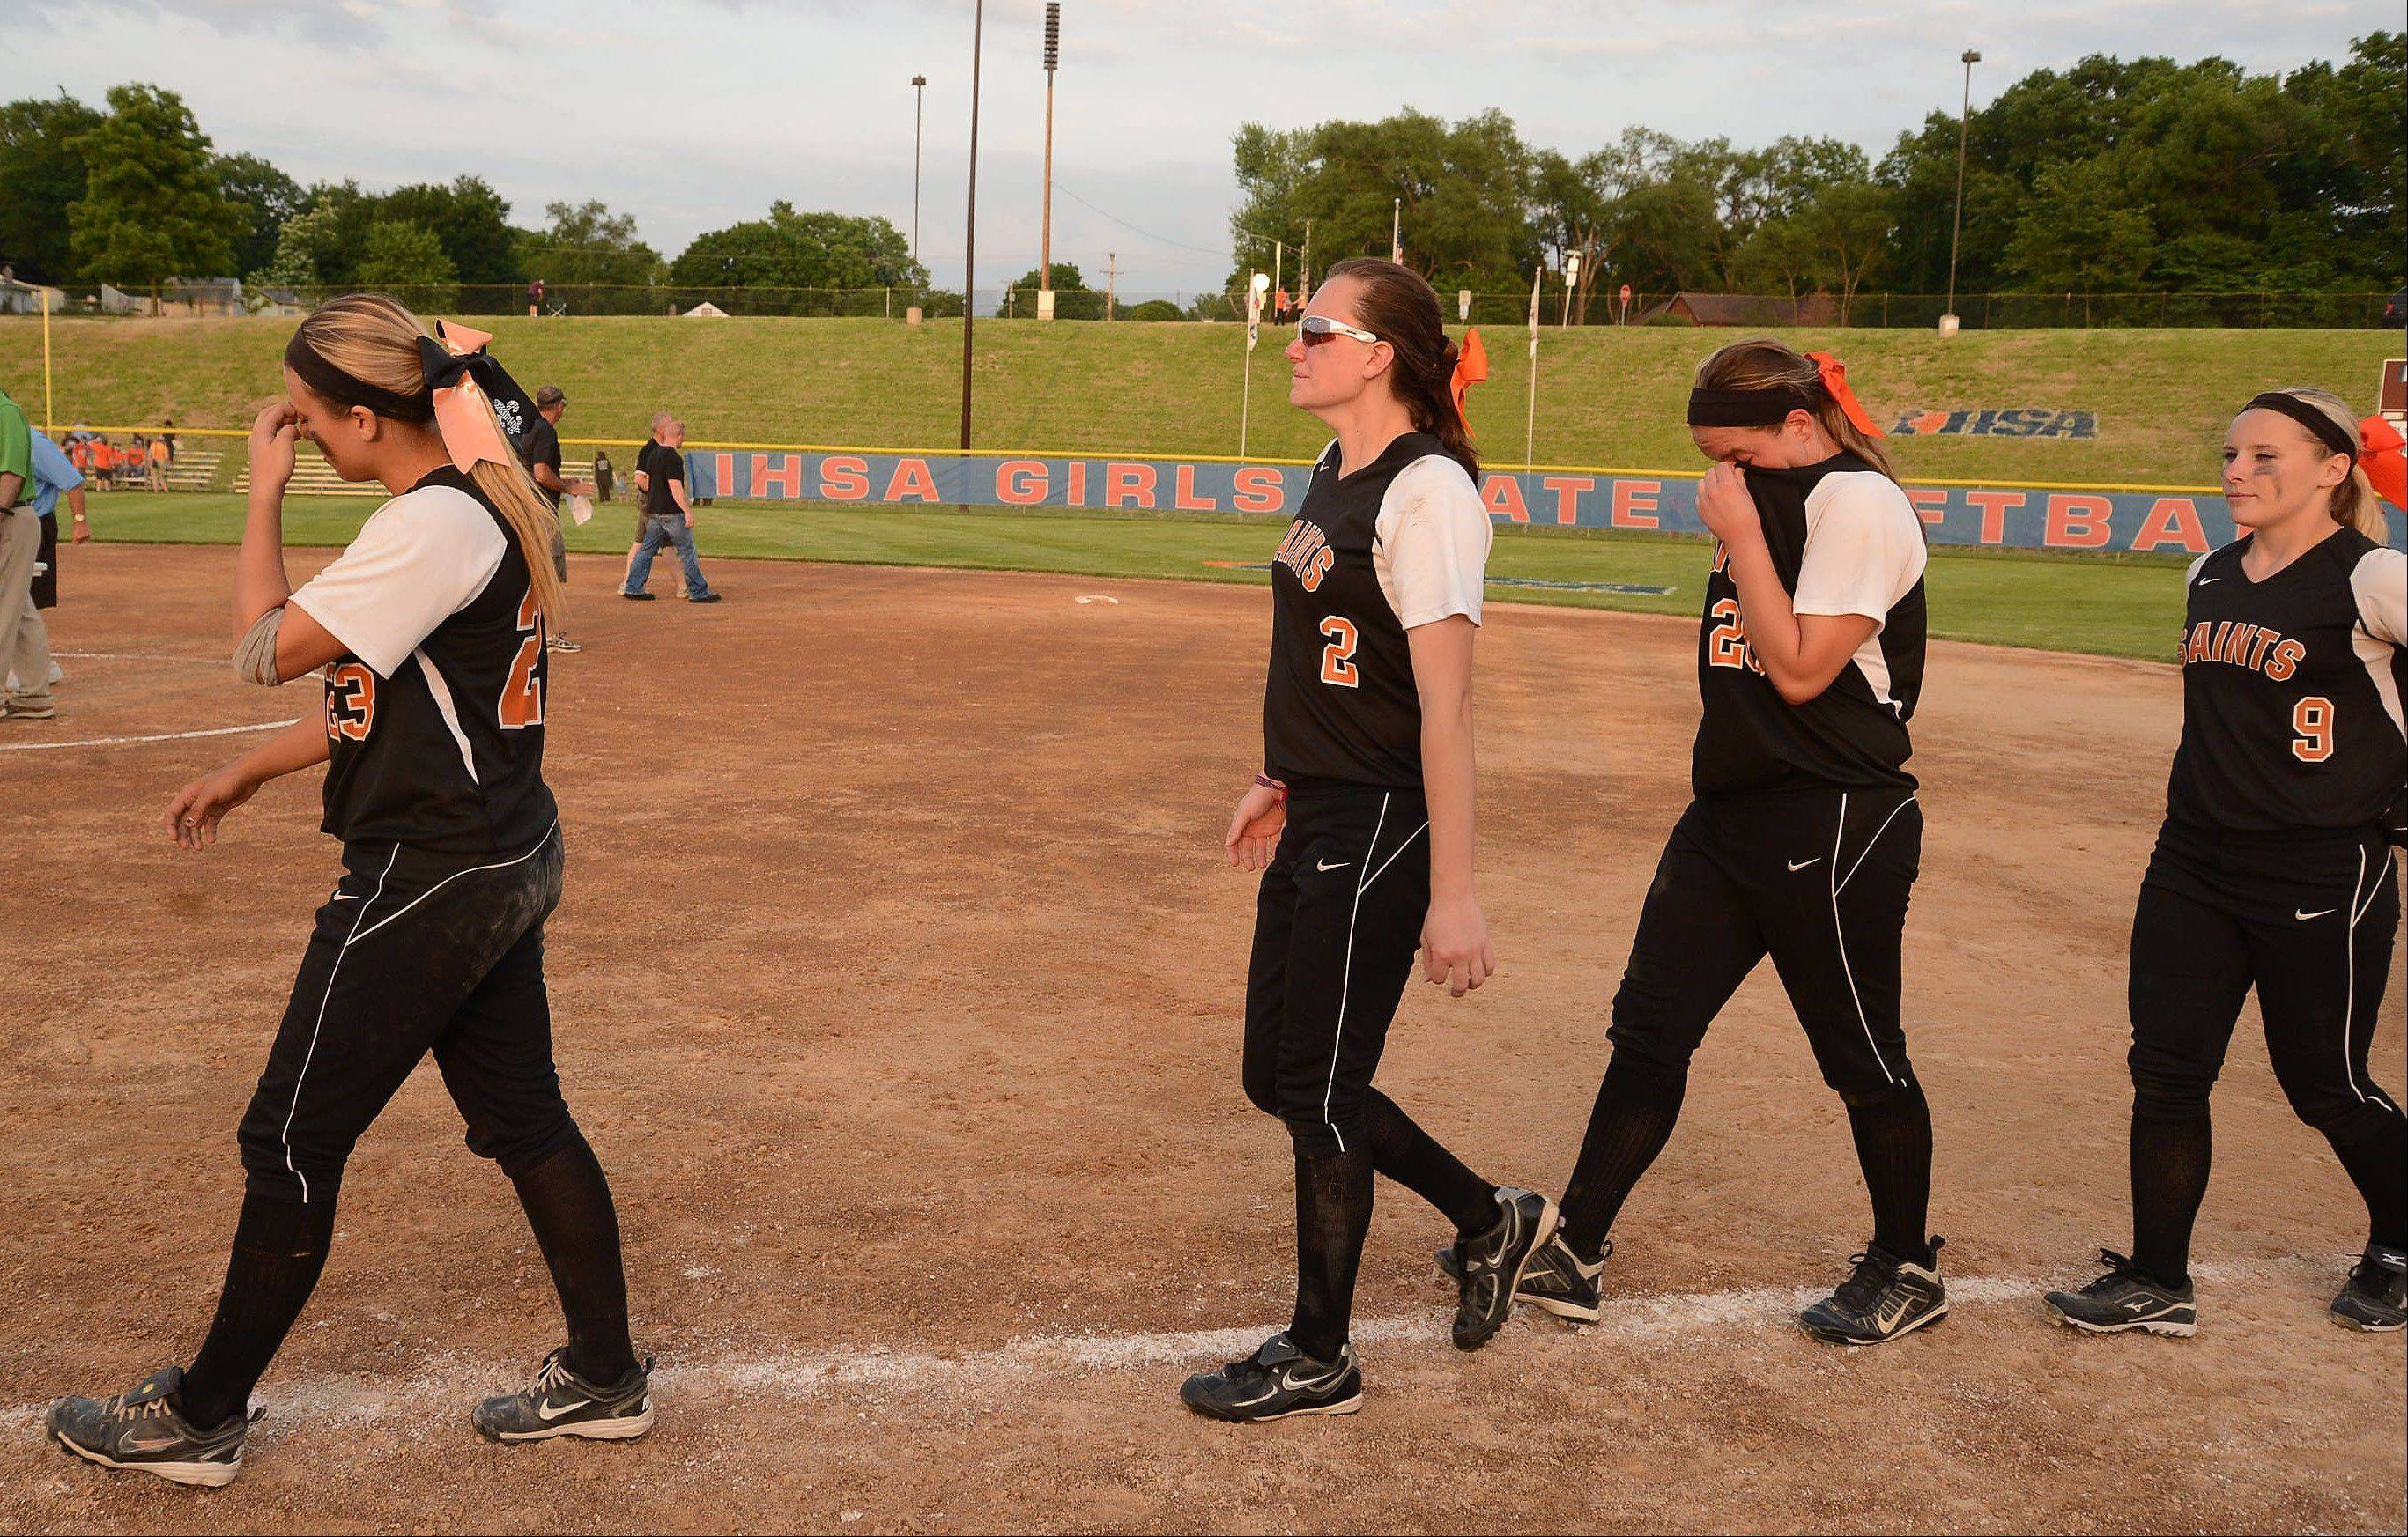 St.Charles East players walk off the field dejectedly after losing to Minooka in the Class 4A softball championship game.